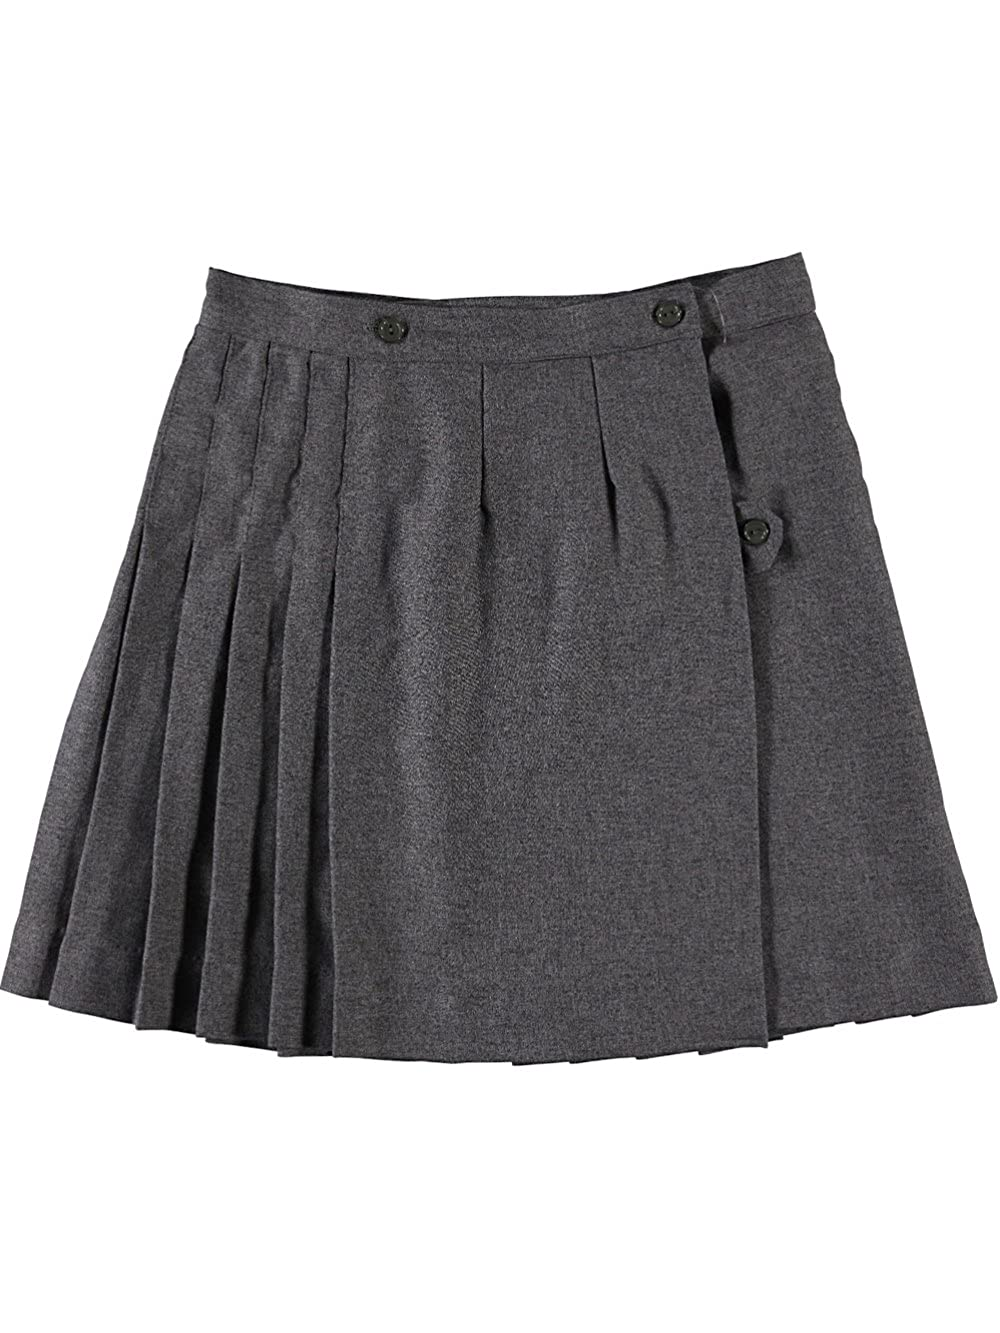 Cookie's Brand Big Girls' Plus Kilt Skirt with Tabs Cookie' s Brand